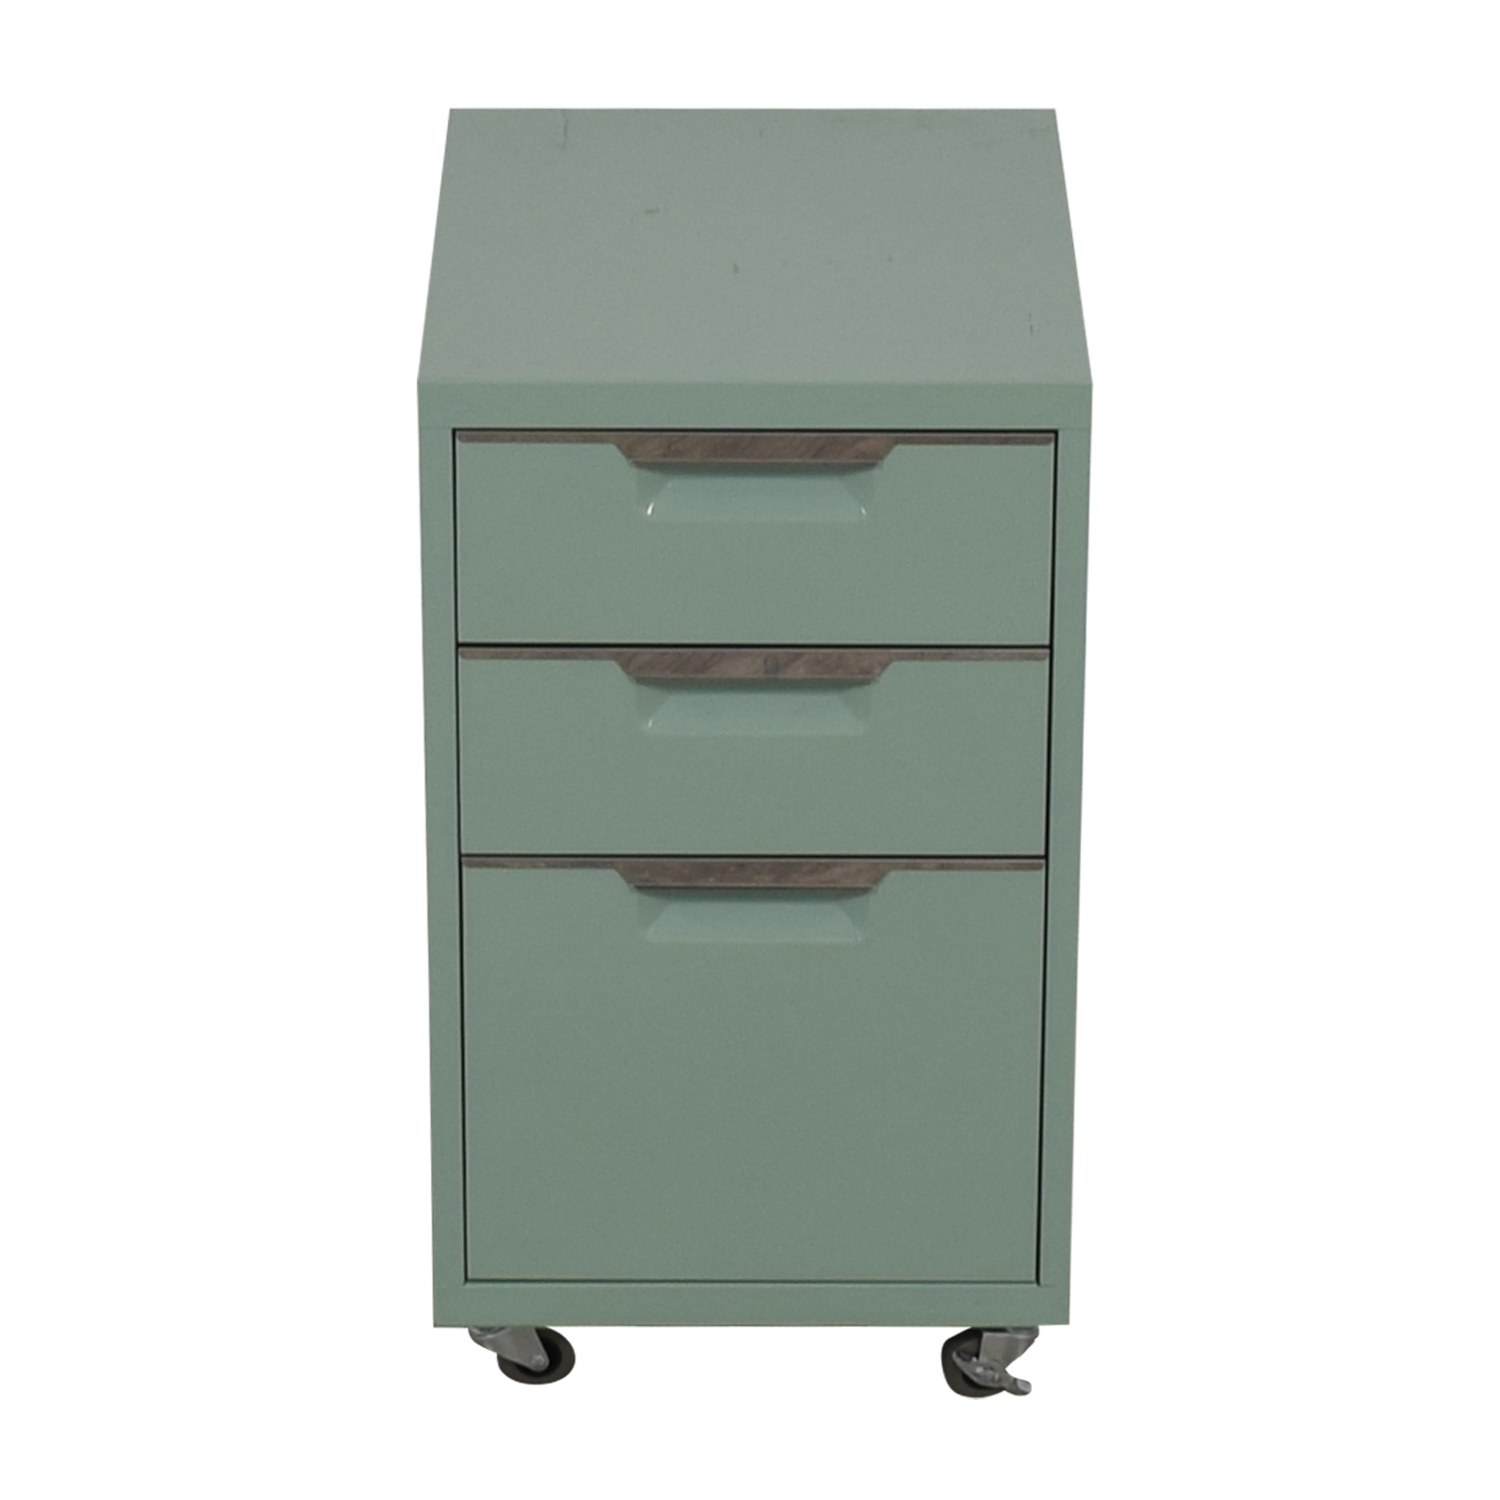 buy CB2 CB2 Green Three-Drawer Filing Cabinet online